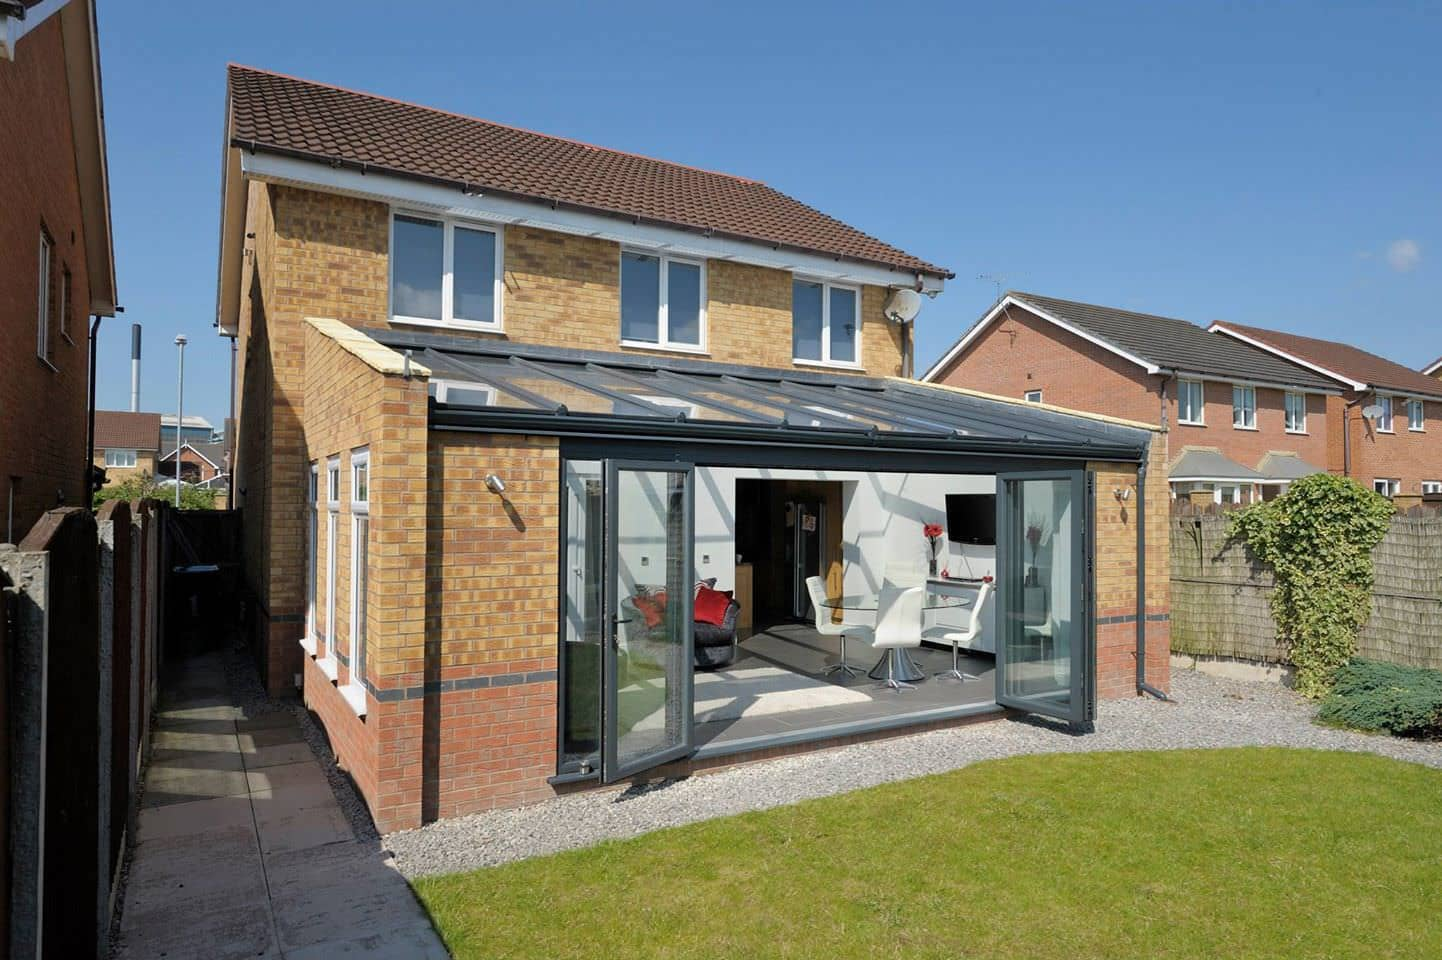 Conservatory News Abbey Conservatories Reading : 9777765818747751664422118608126o from www.abbeyconservatories.co.uk size 1442 x 960 jpeg 204kB